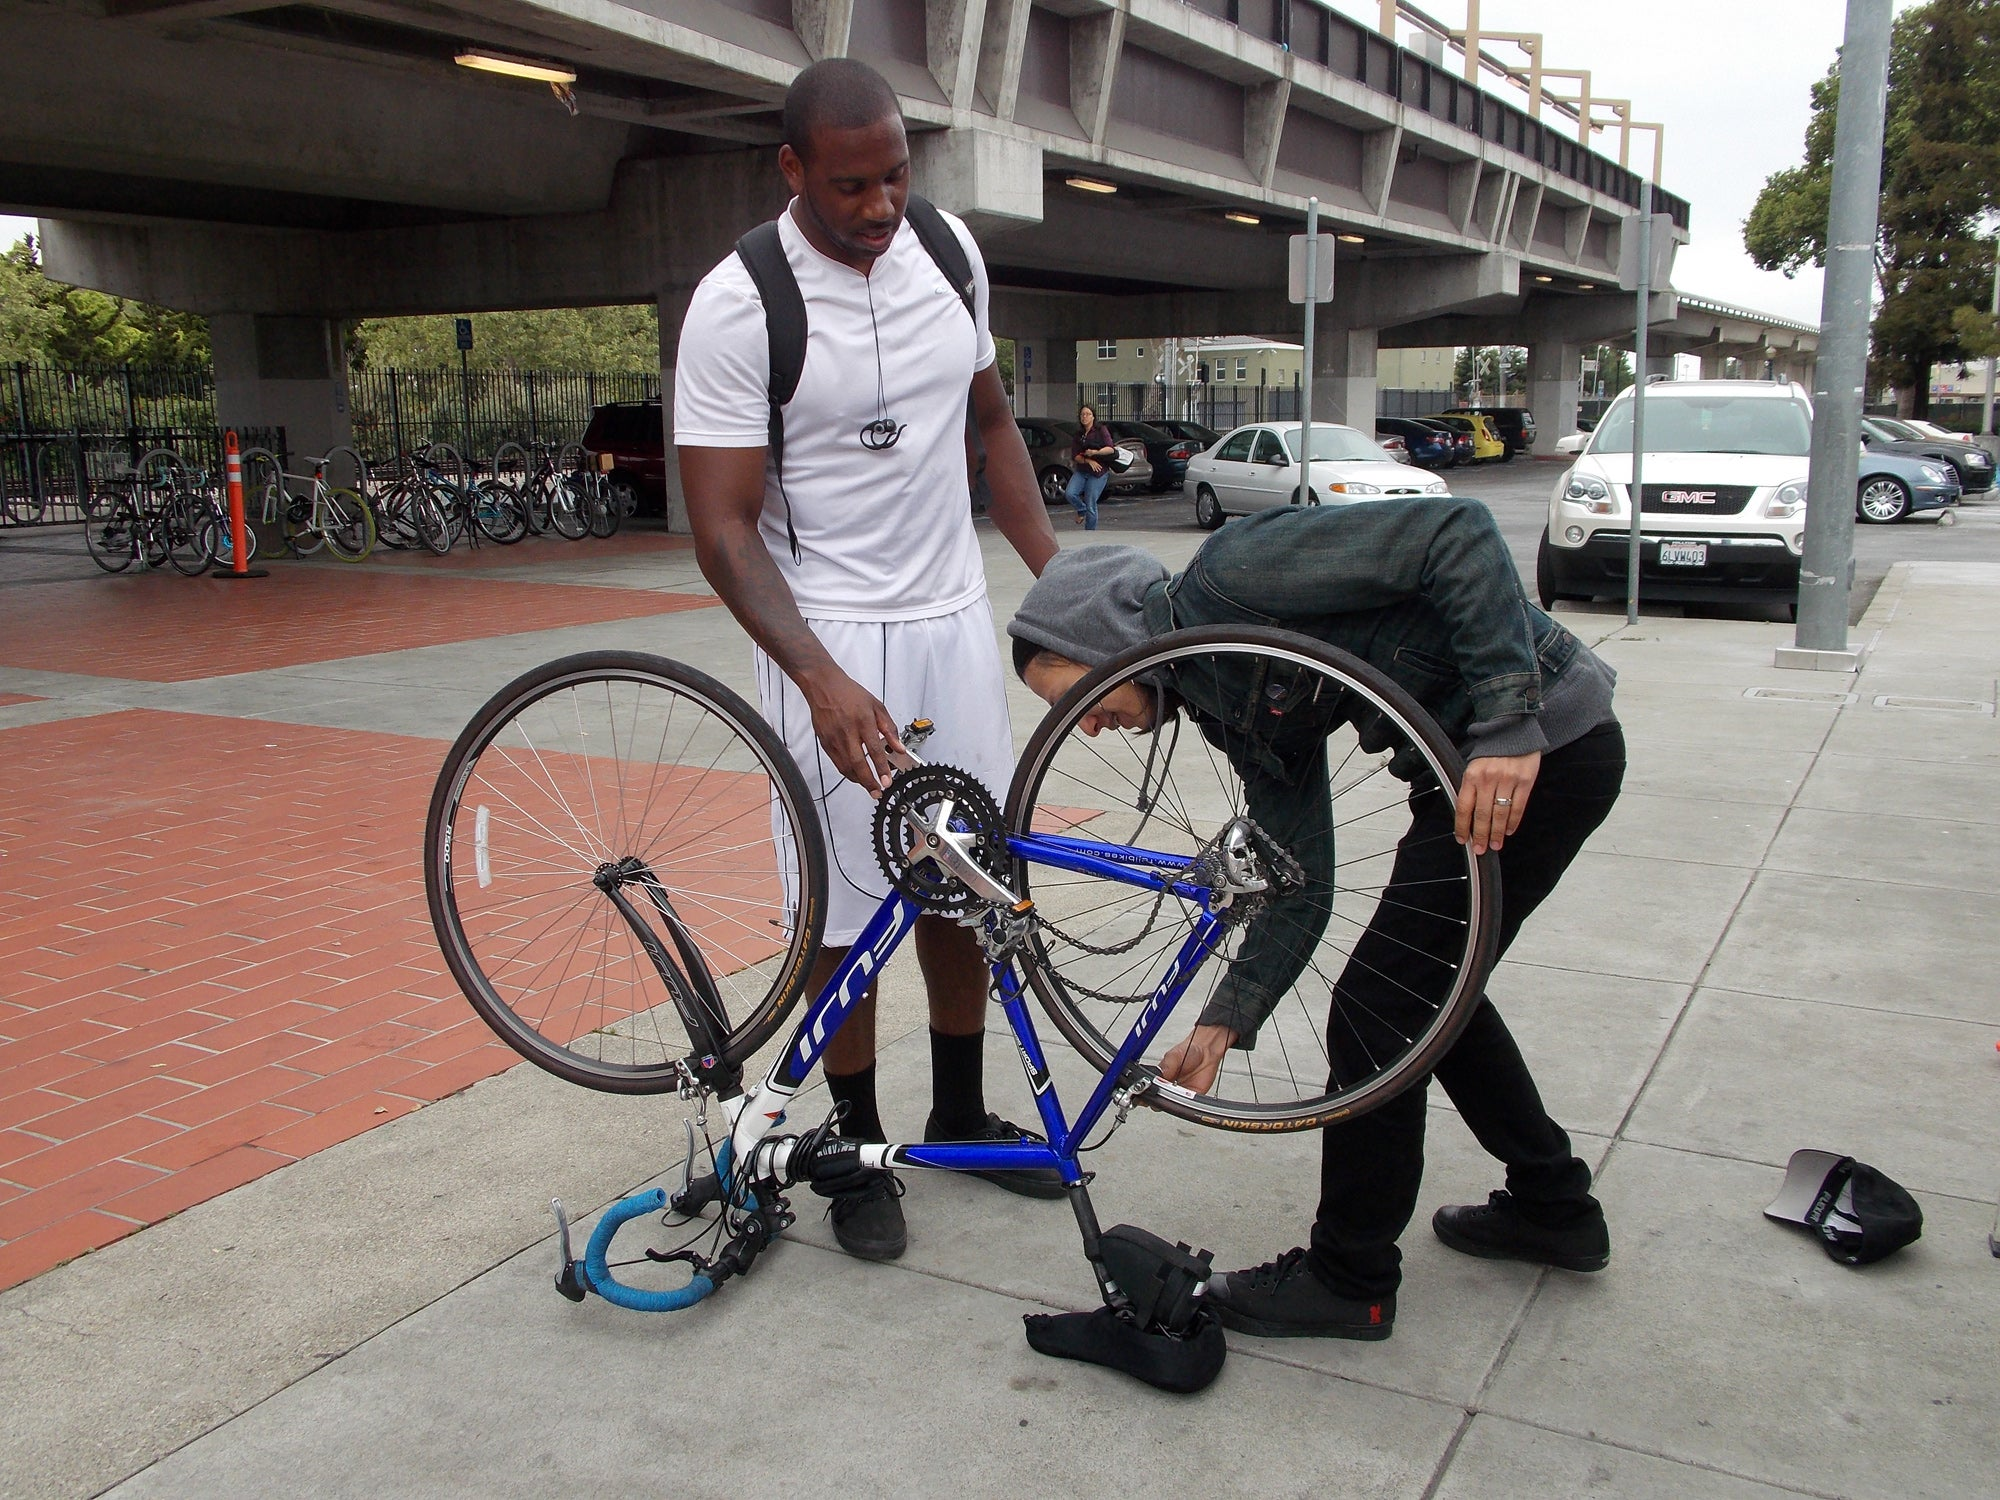 A commuter gets some tune up help at the Hayward BART station courtesy of Cyclepath Hayward.